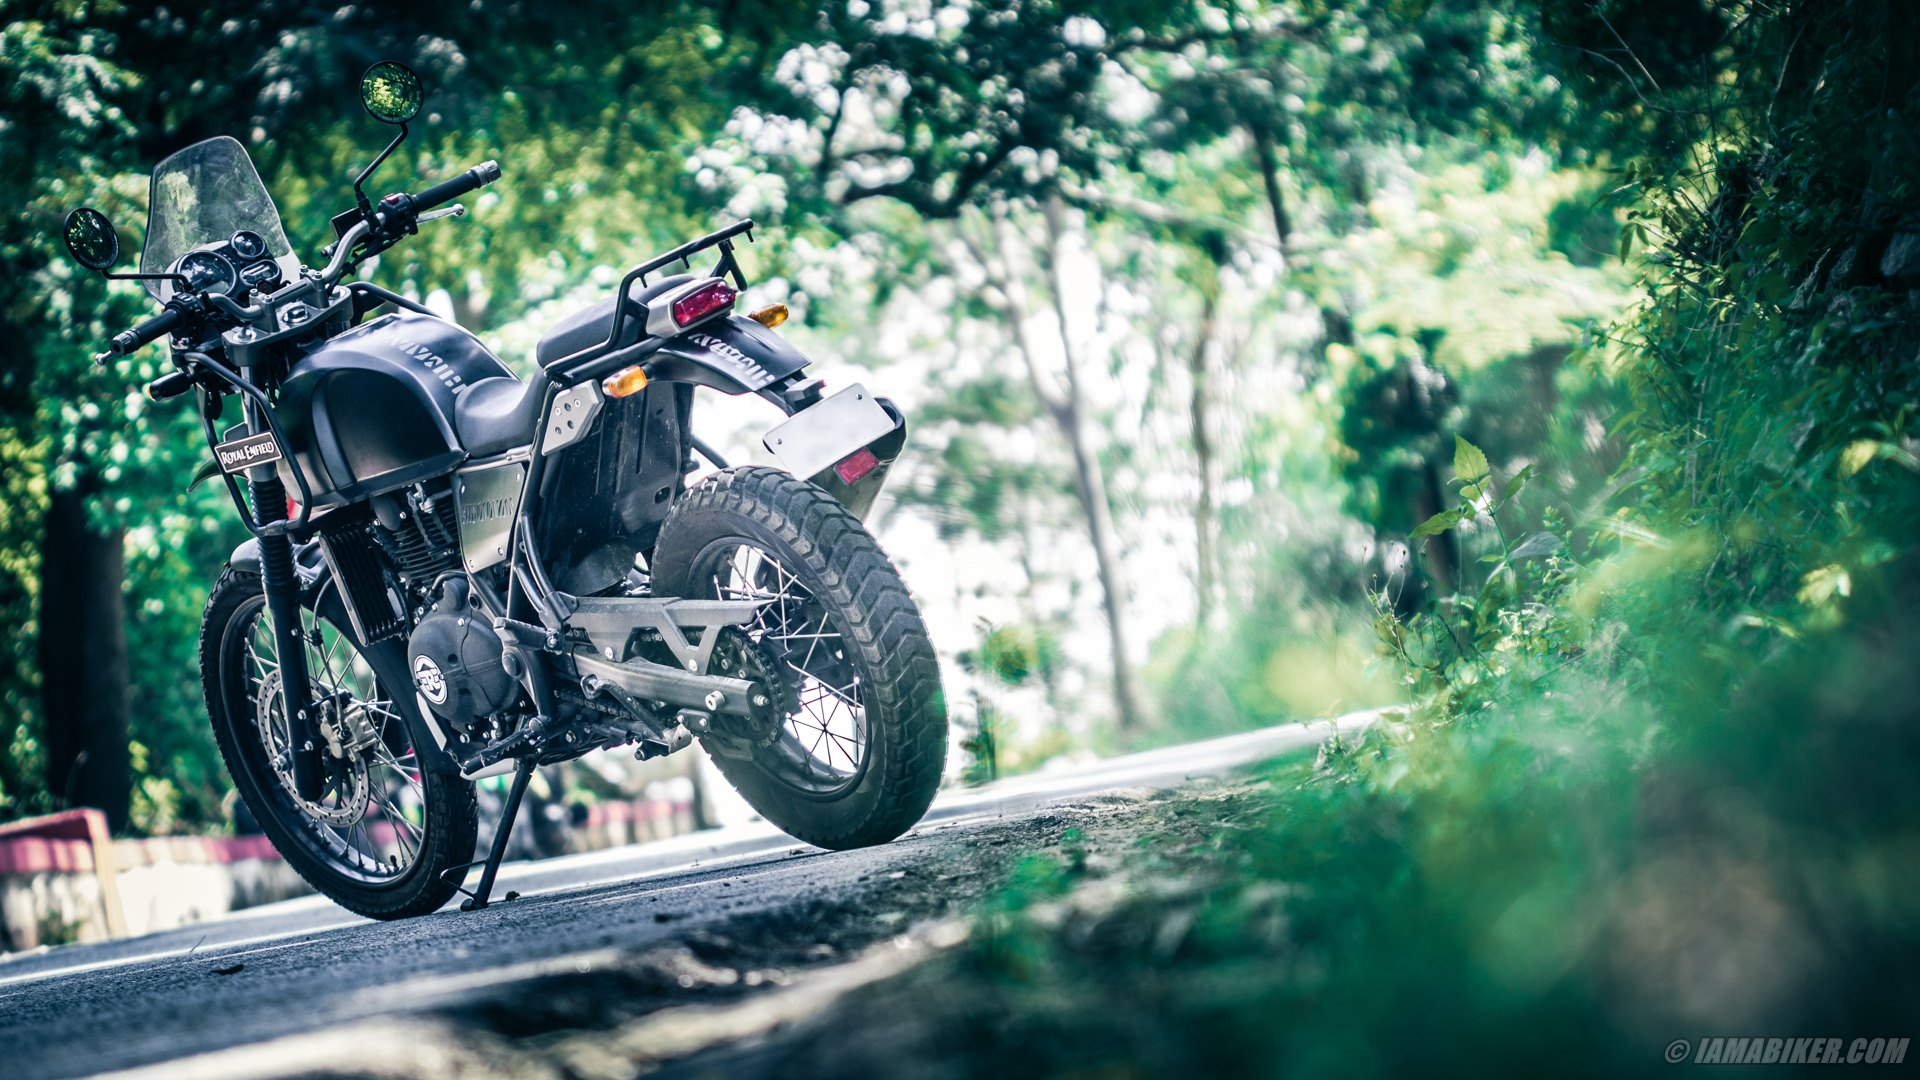 Royal enfield himalayan hd wallpapers iamabiker - Royal enfield classic 350 wallpaper ...